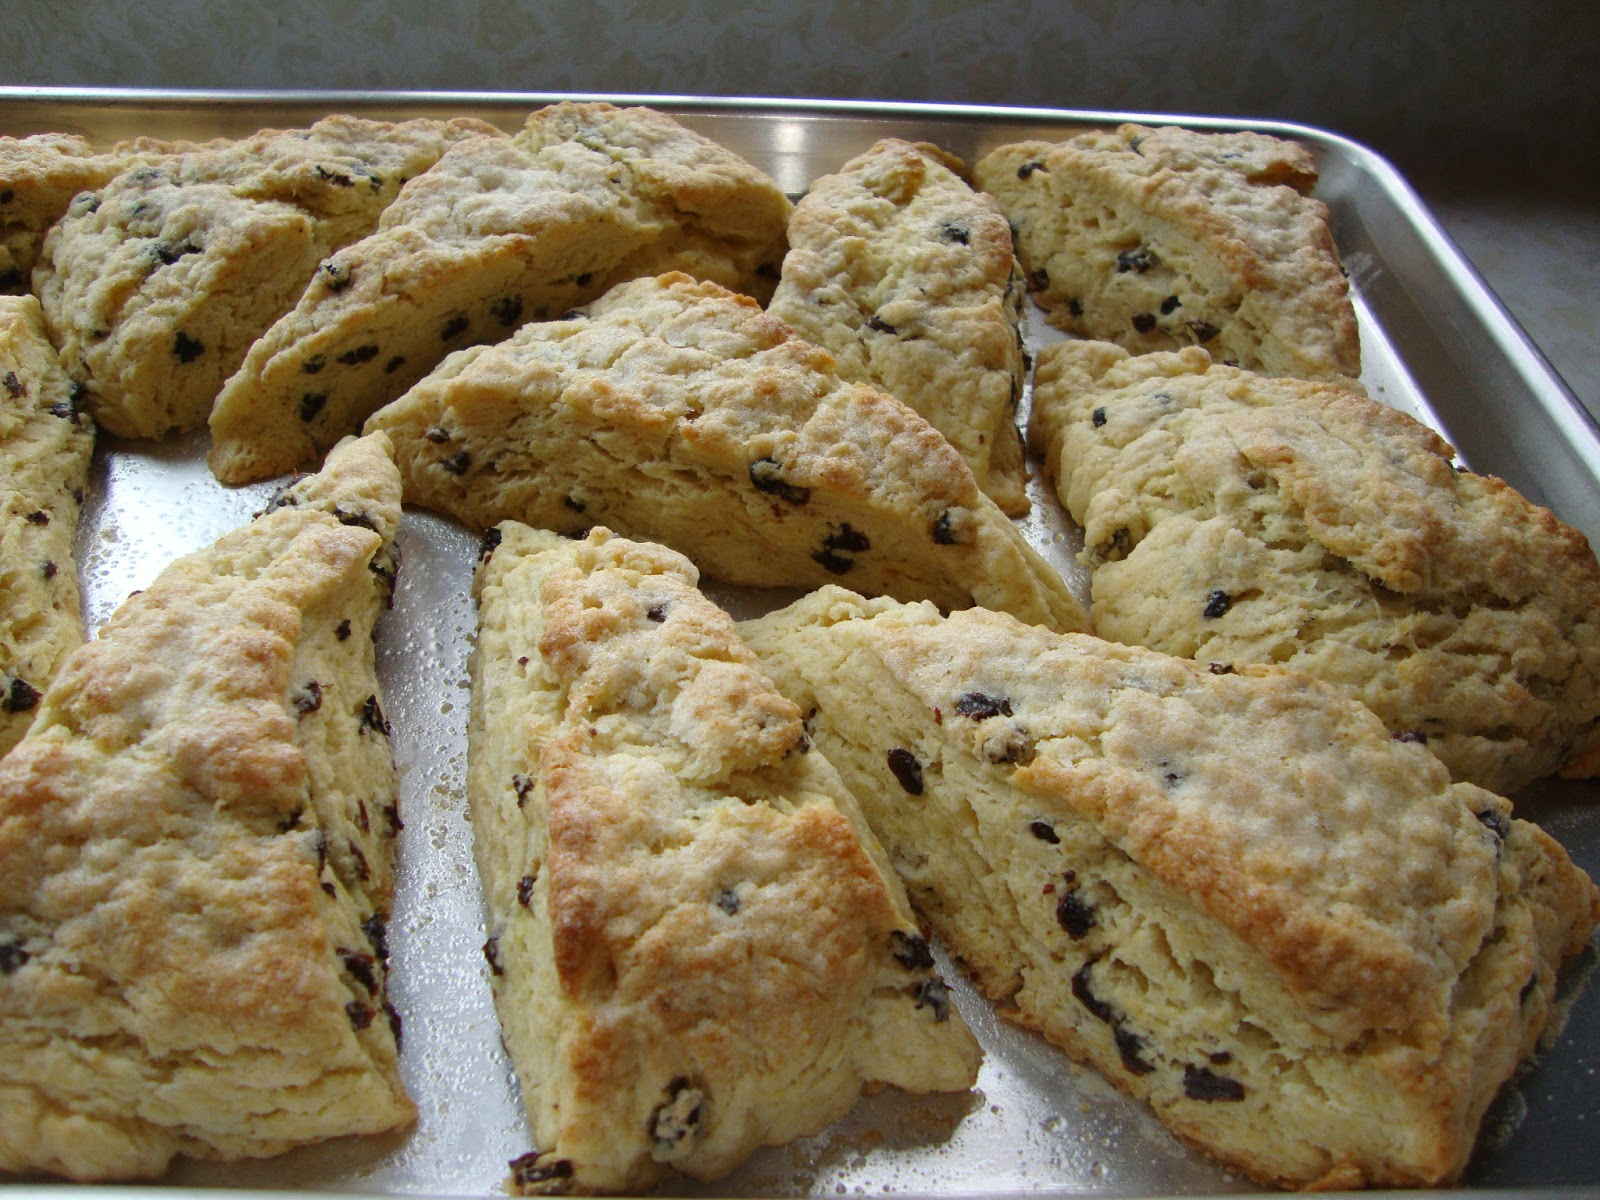 Live from Voorheesville: Buttermilk Scones with Currants